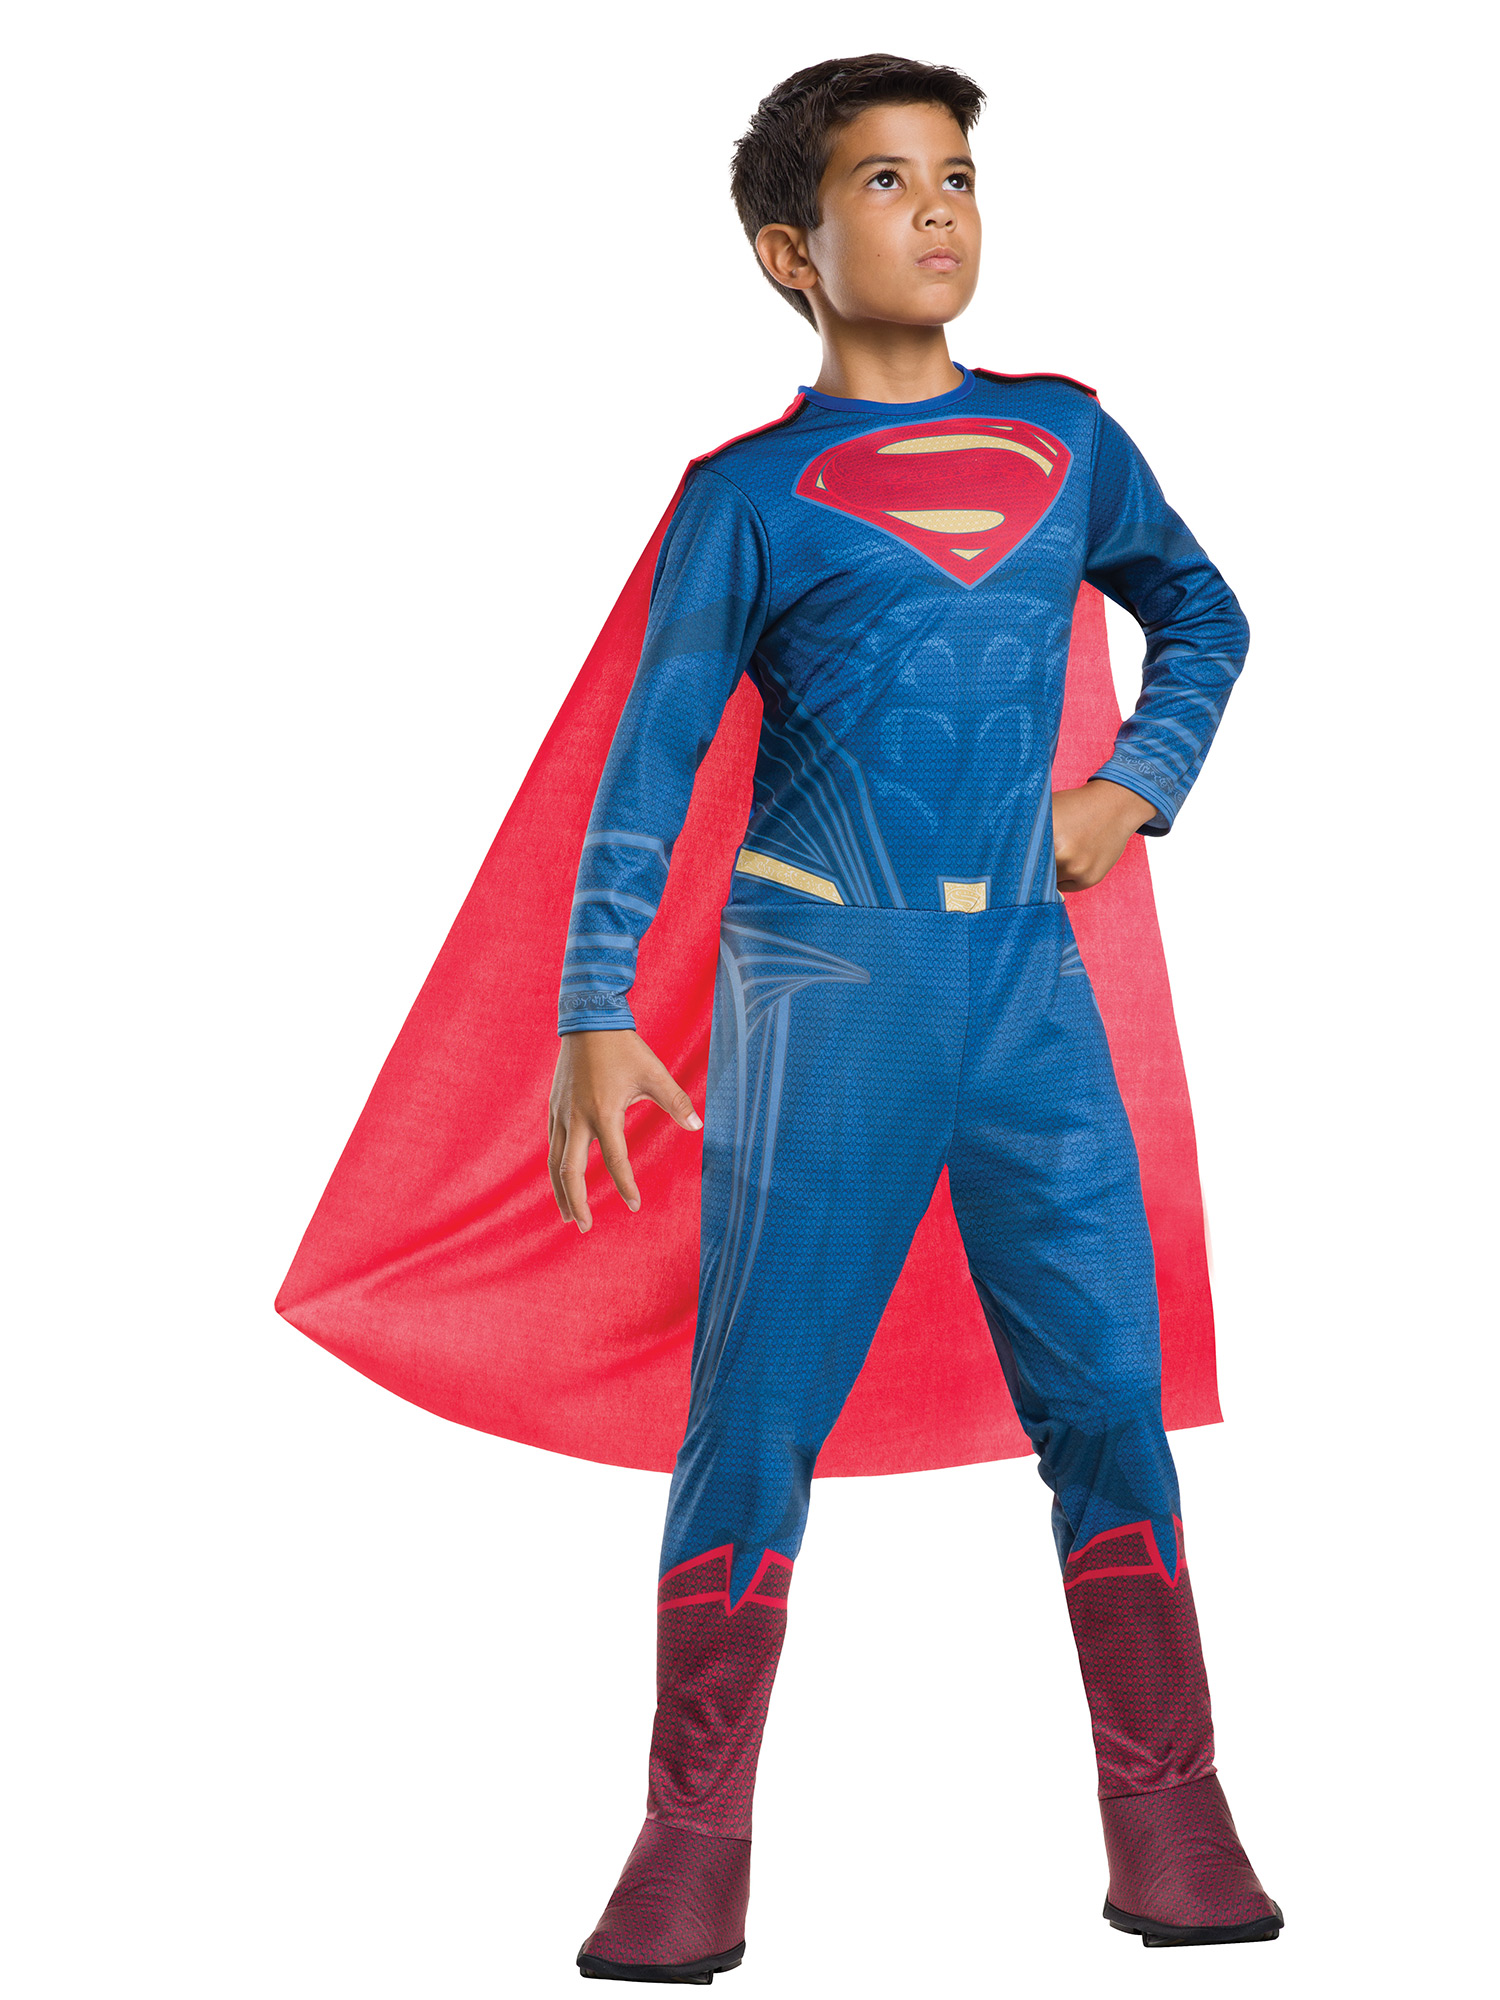 Superman Costume For Kids R620566-M